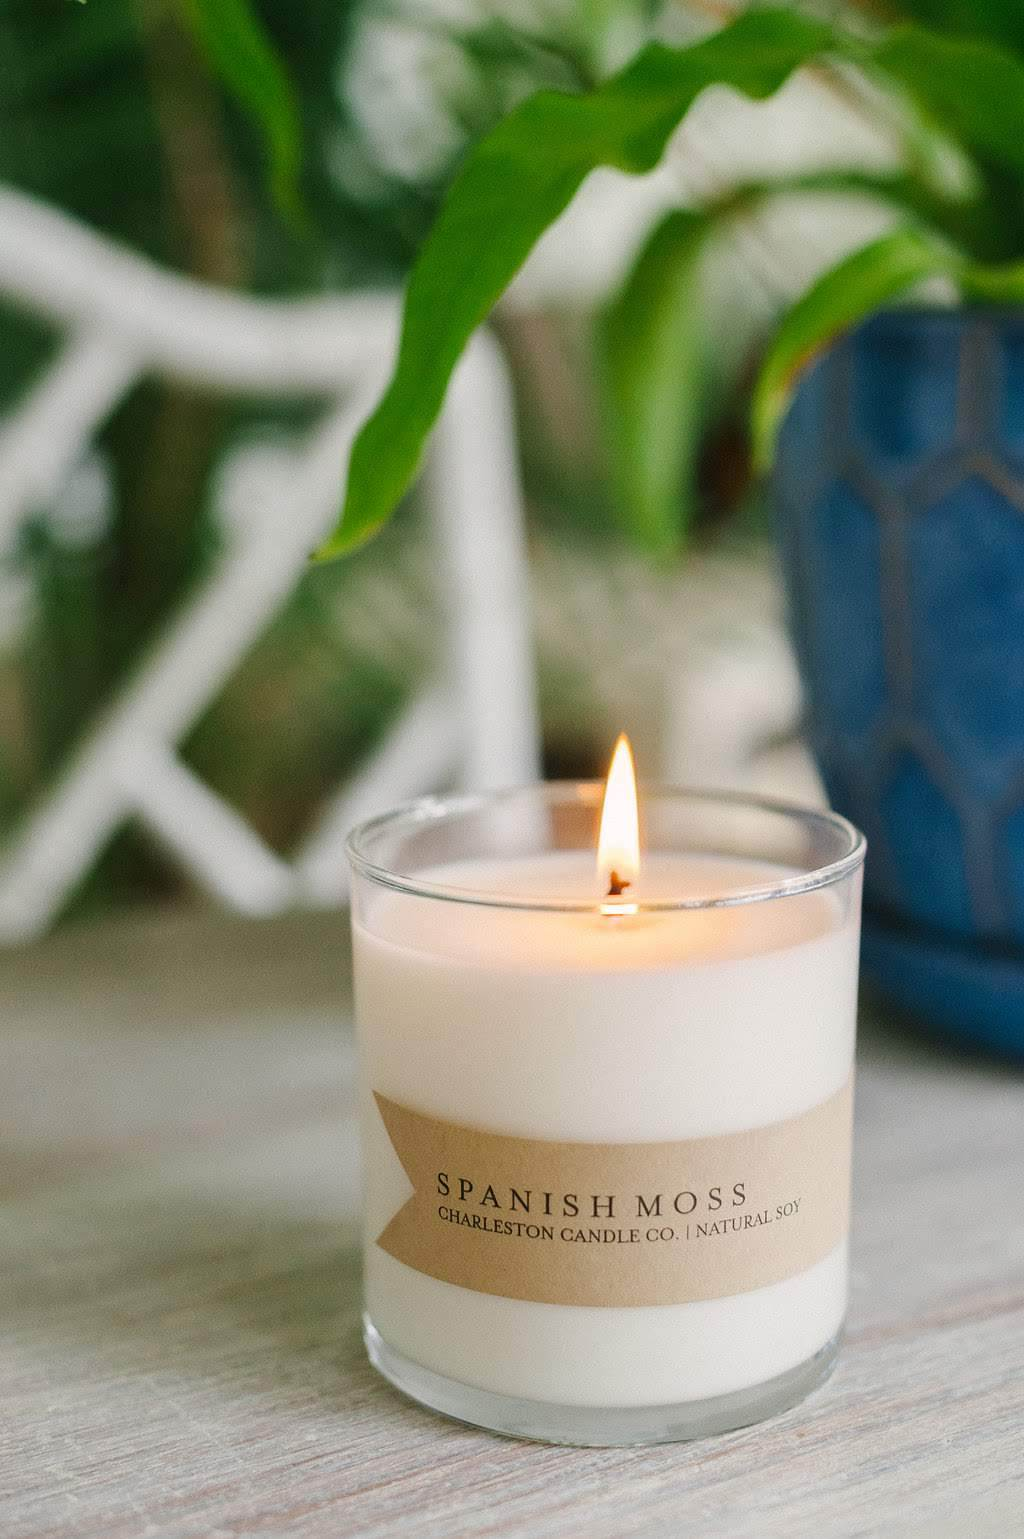 Spanish Moss Candle